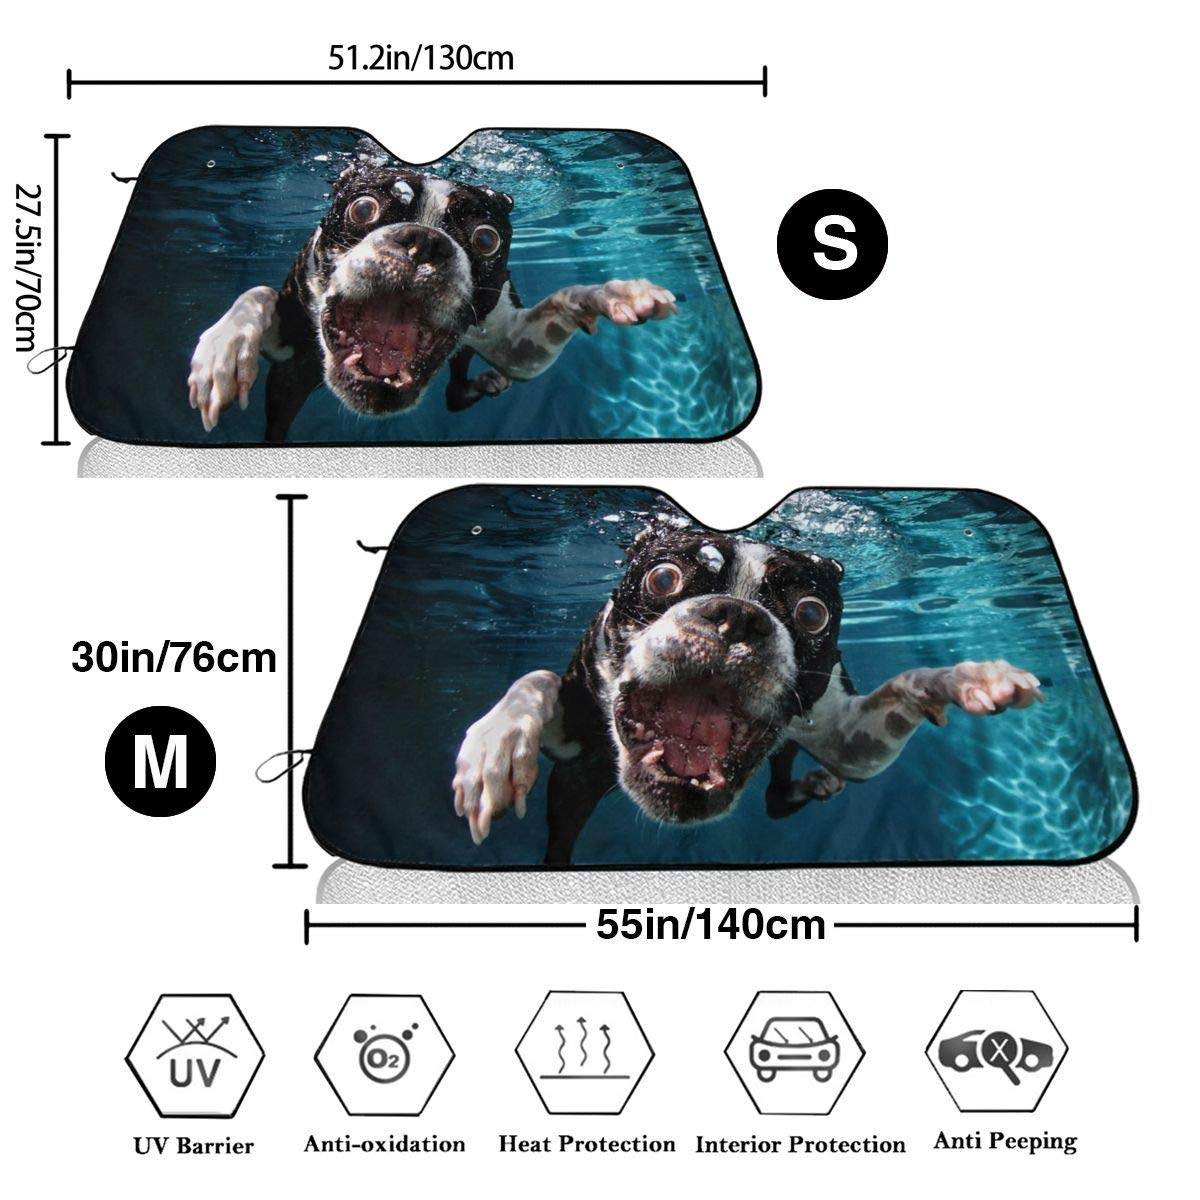 TPSXXY-WS Funny Boston Terrier Windshield Sunshade for Car SUV Truck Foldable UV Ray Reflector Front Window Sun Shade Visor Shield Cover